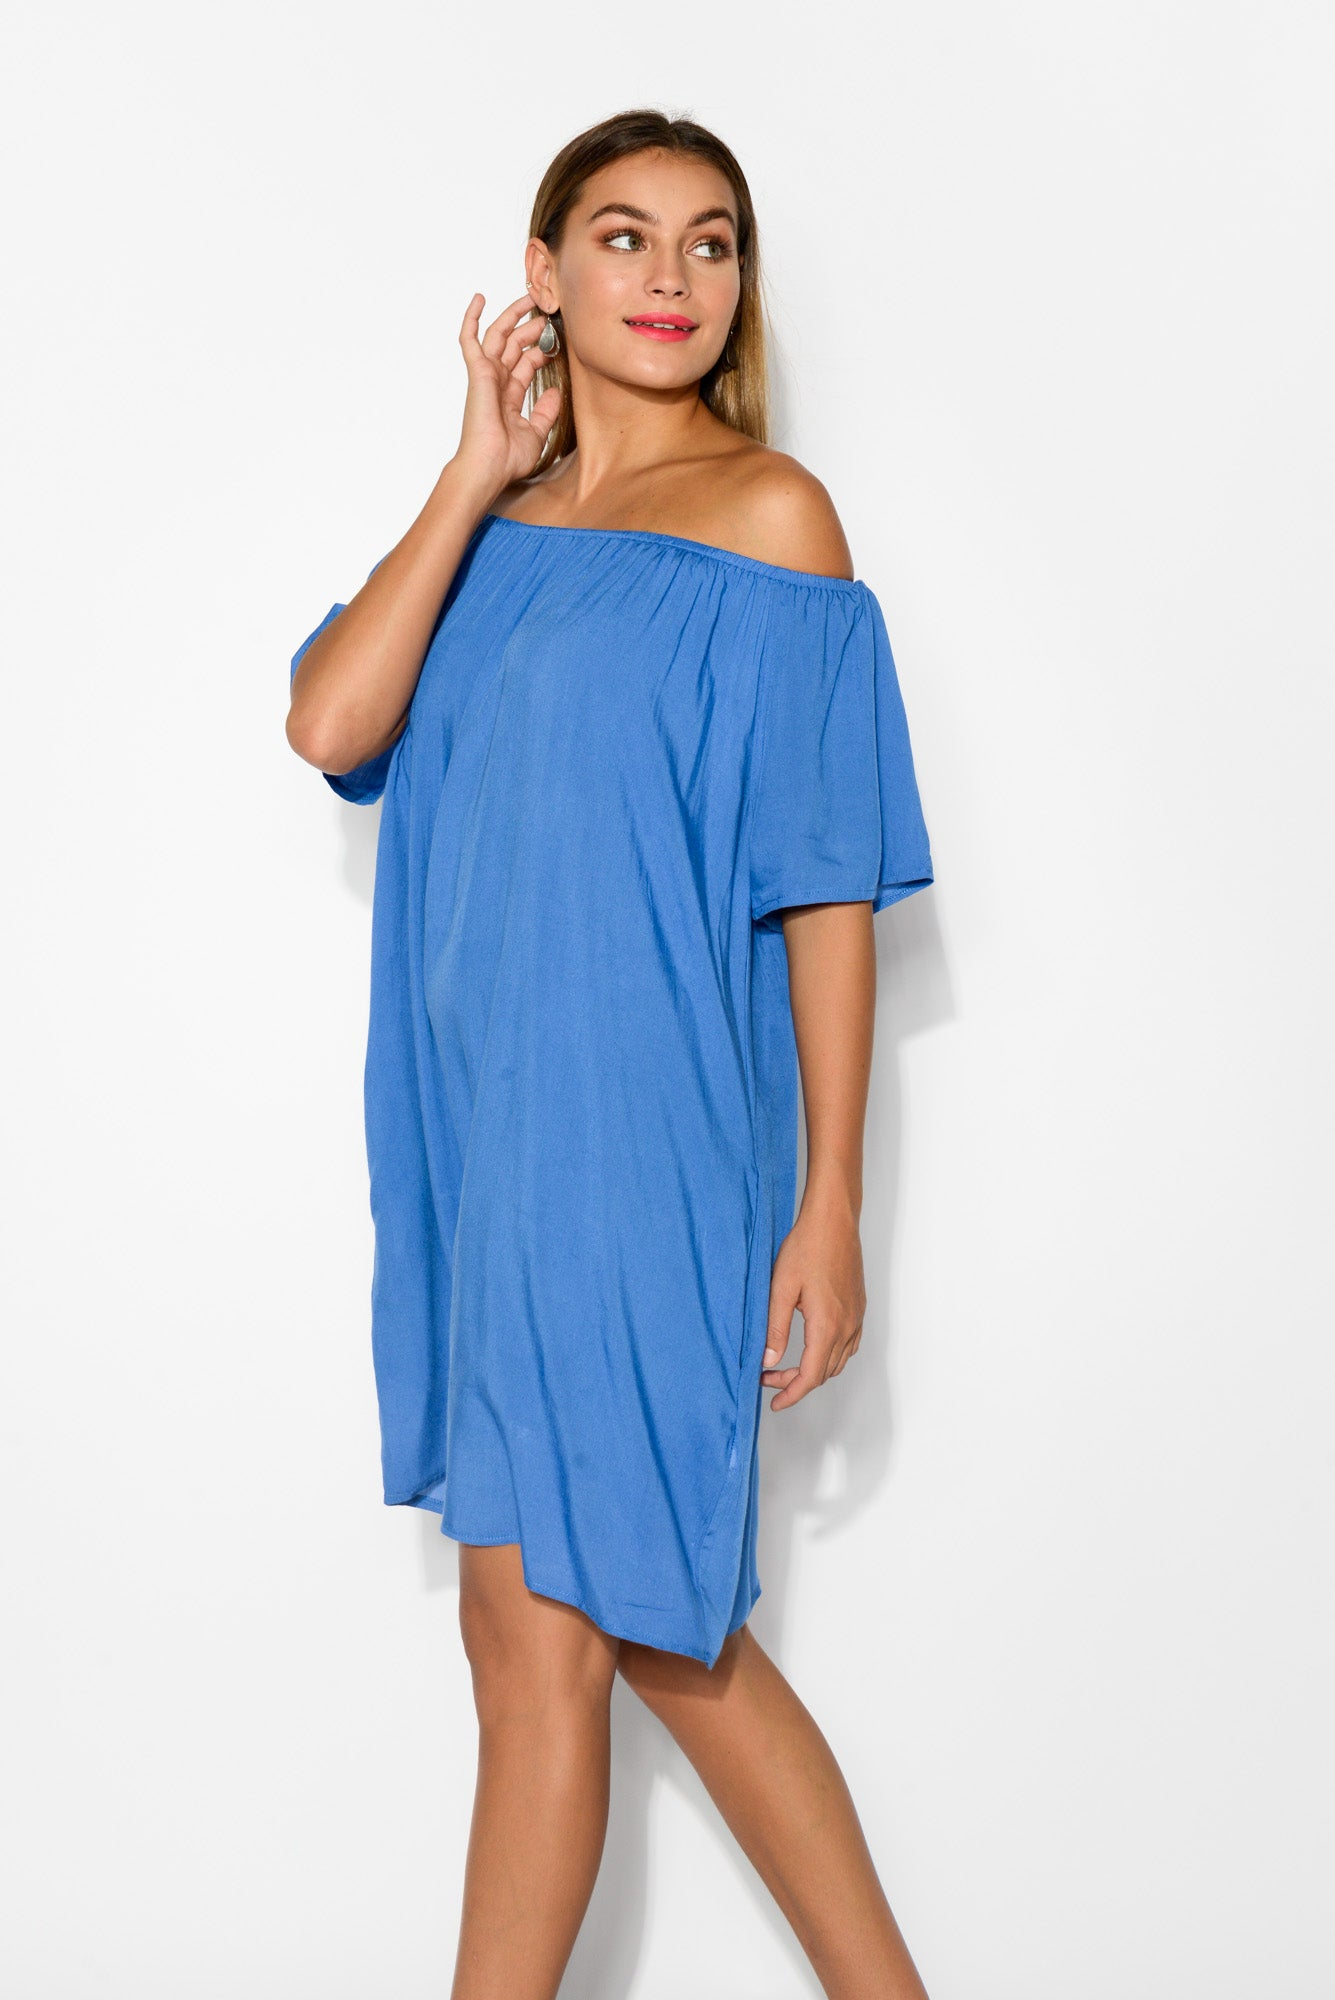 Lauren Cobalt Blue Off Shoulder Dress - Blue Bungalow